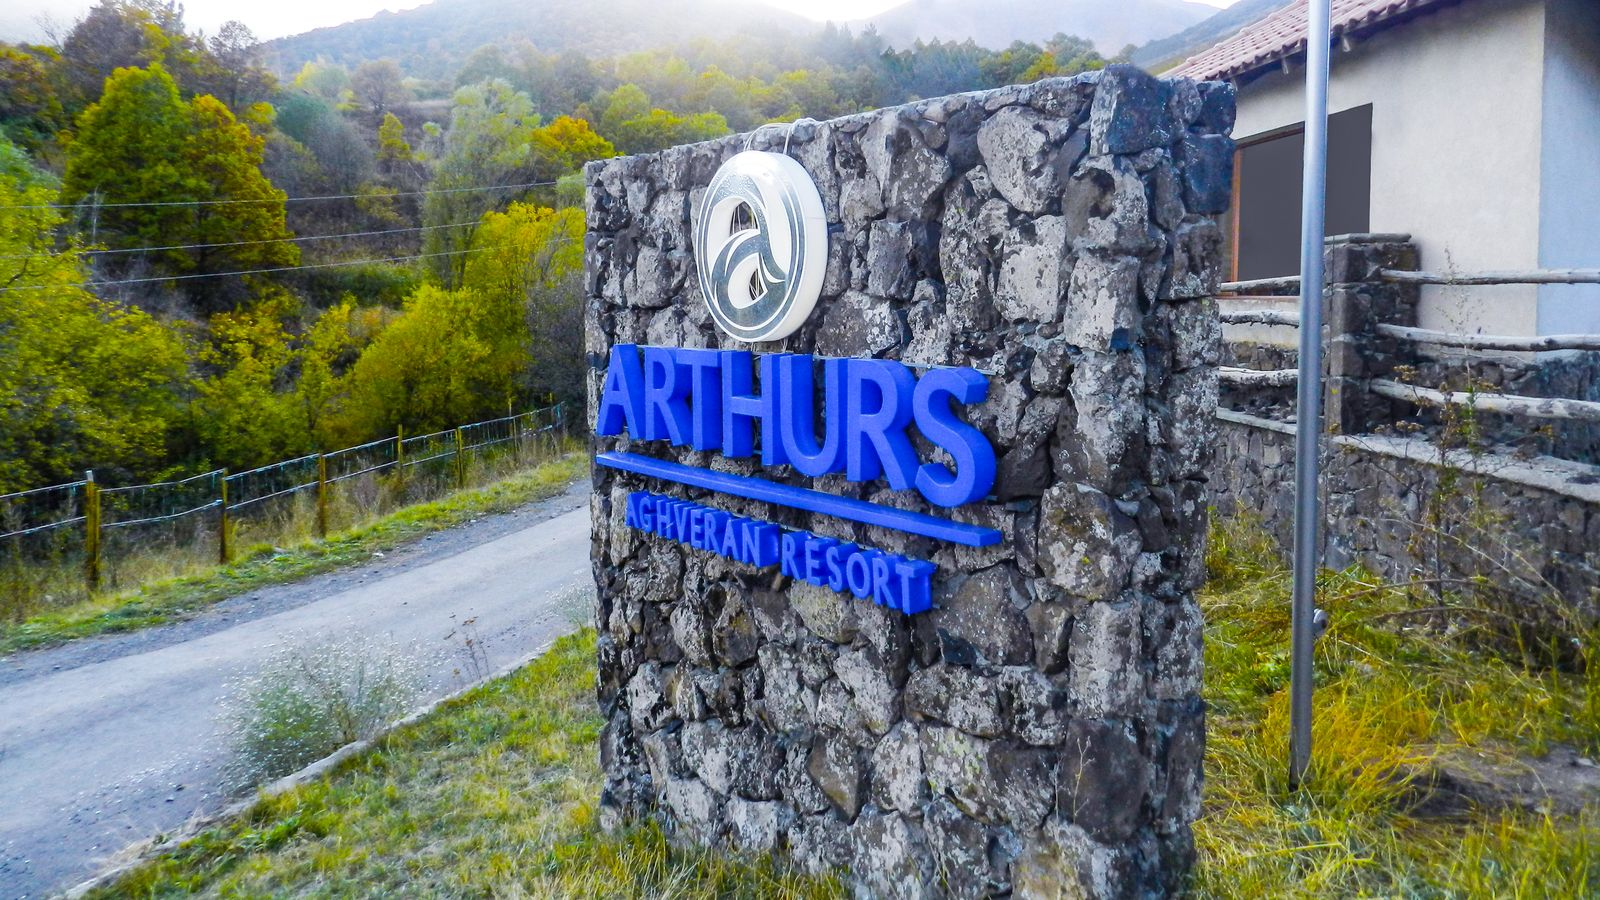 Arthurs Aghveran Resort 3d acrylic letters and logo fixed on a stone wall for business exterior branding